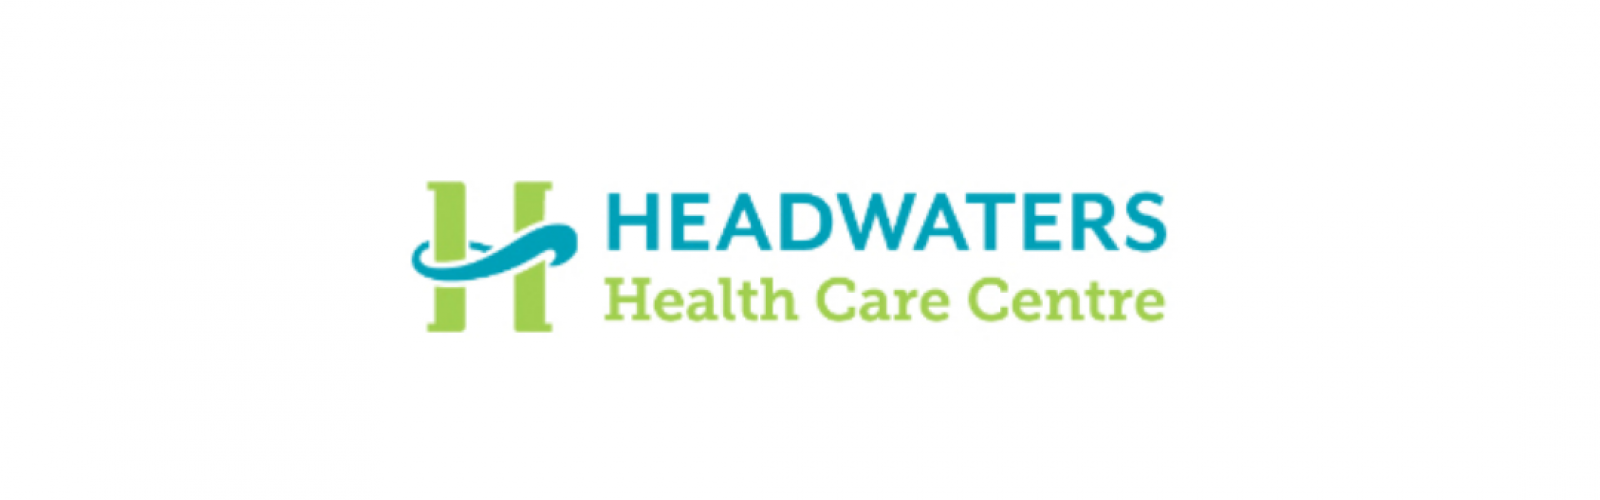 Headwaters Health Care logo